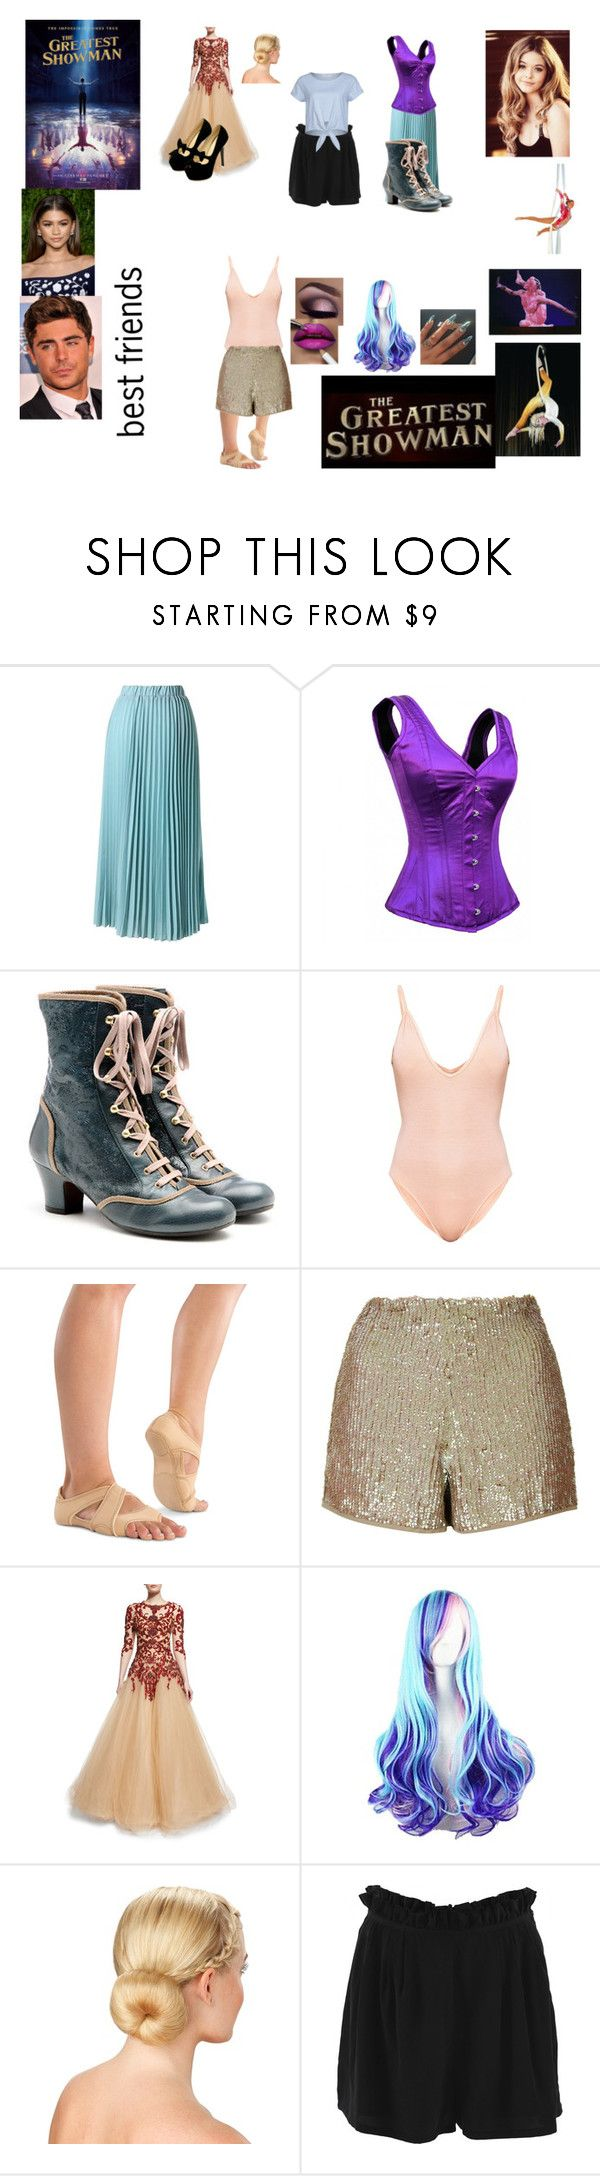 """""""Briella James- The Greatest Showman Oc"""" by iluvpolyvore-498 ❤ liked on Polyvore featuring Chicwish, Chie Mihara, Danshuz, Topshop, MAC Cosmetics, Marchesa, Sea, New York, Sparkz and TheGreatestShowman"""